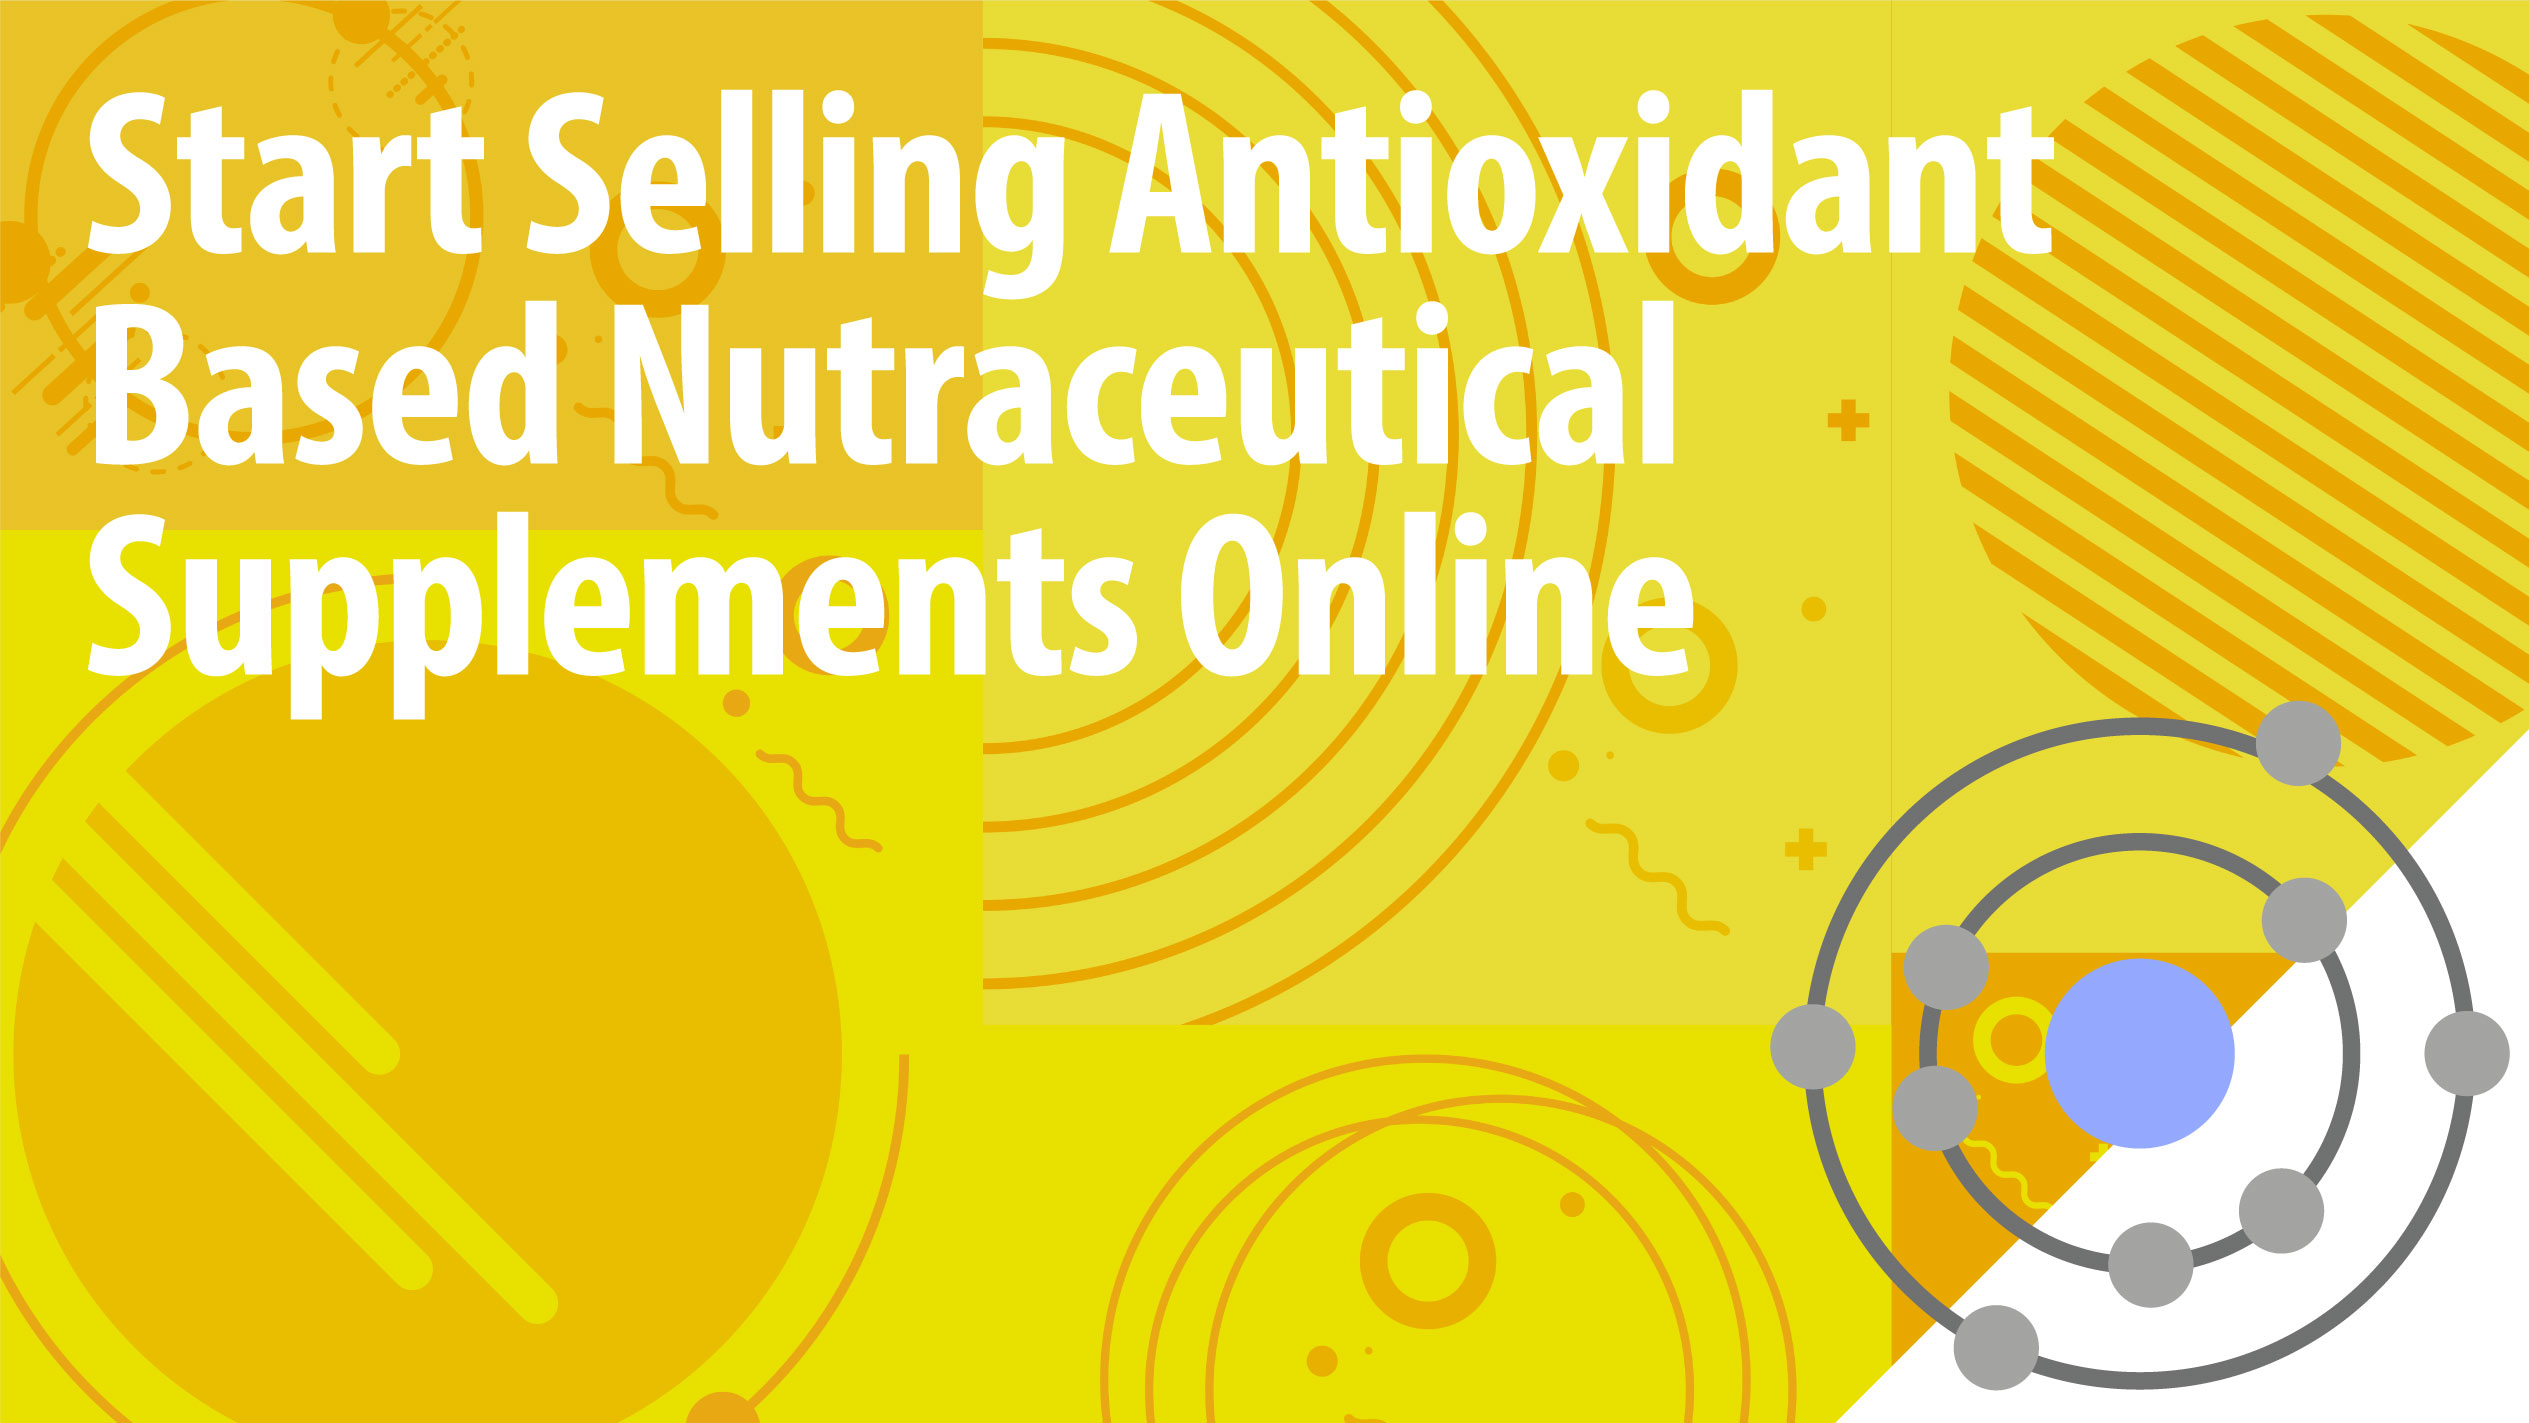 Start Selling Antioxidant Based Nutraceutical Supplements Online